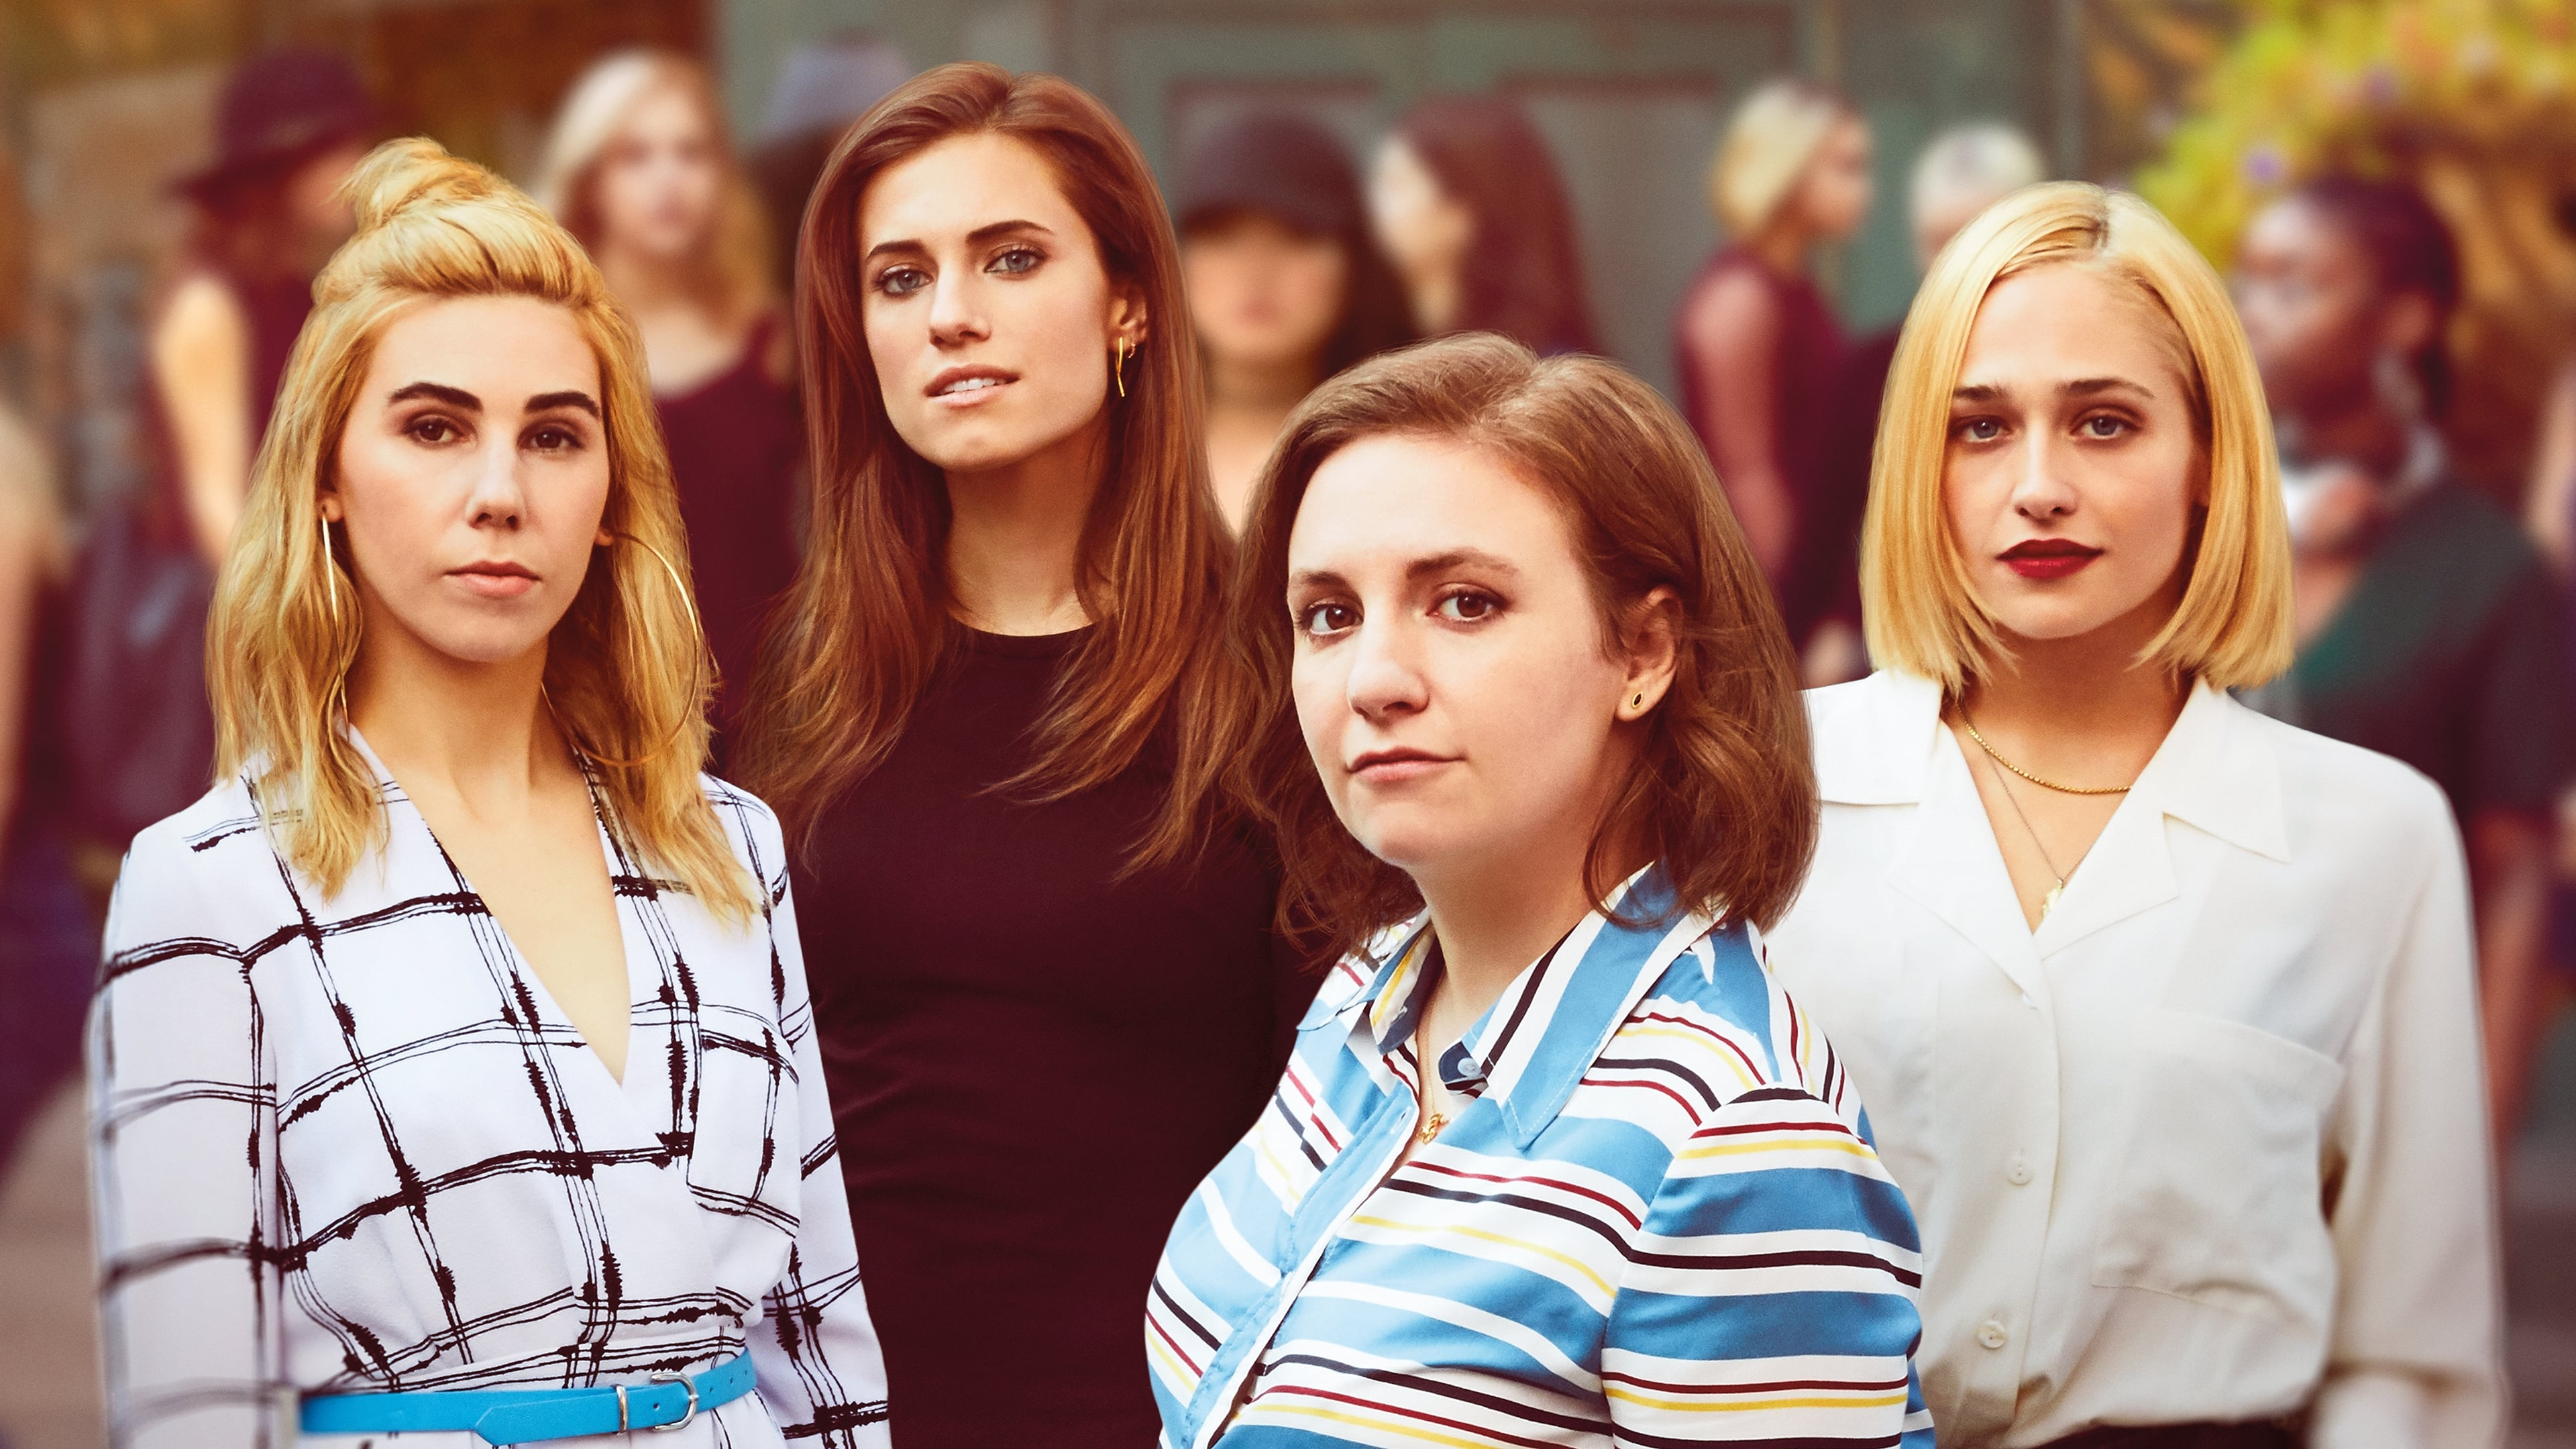 Girls renewed with 3rd season